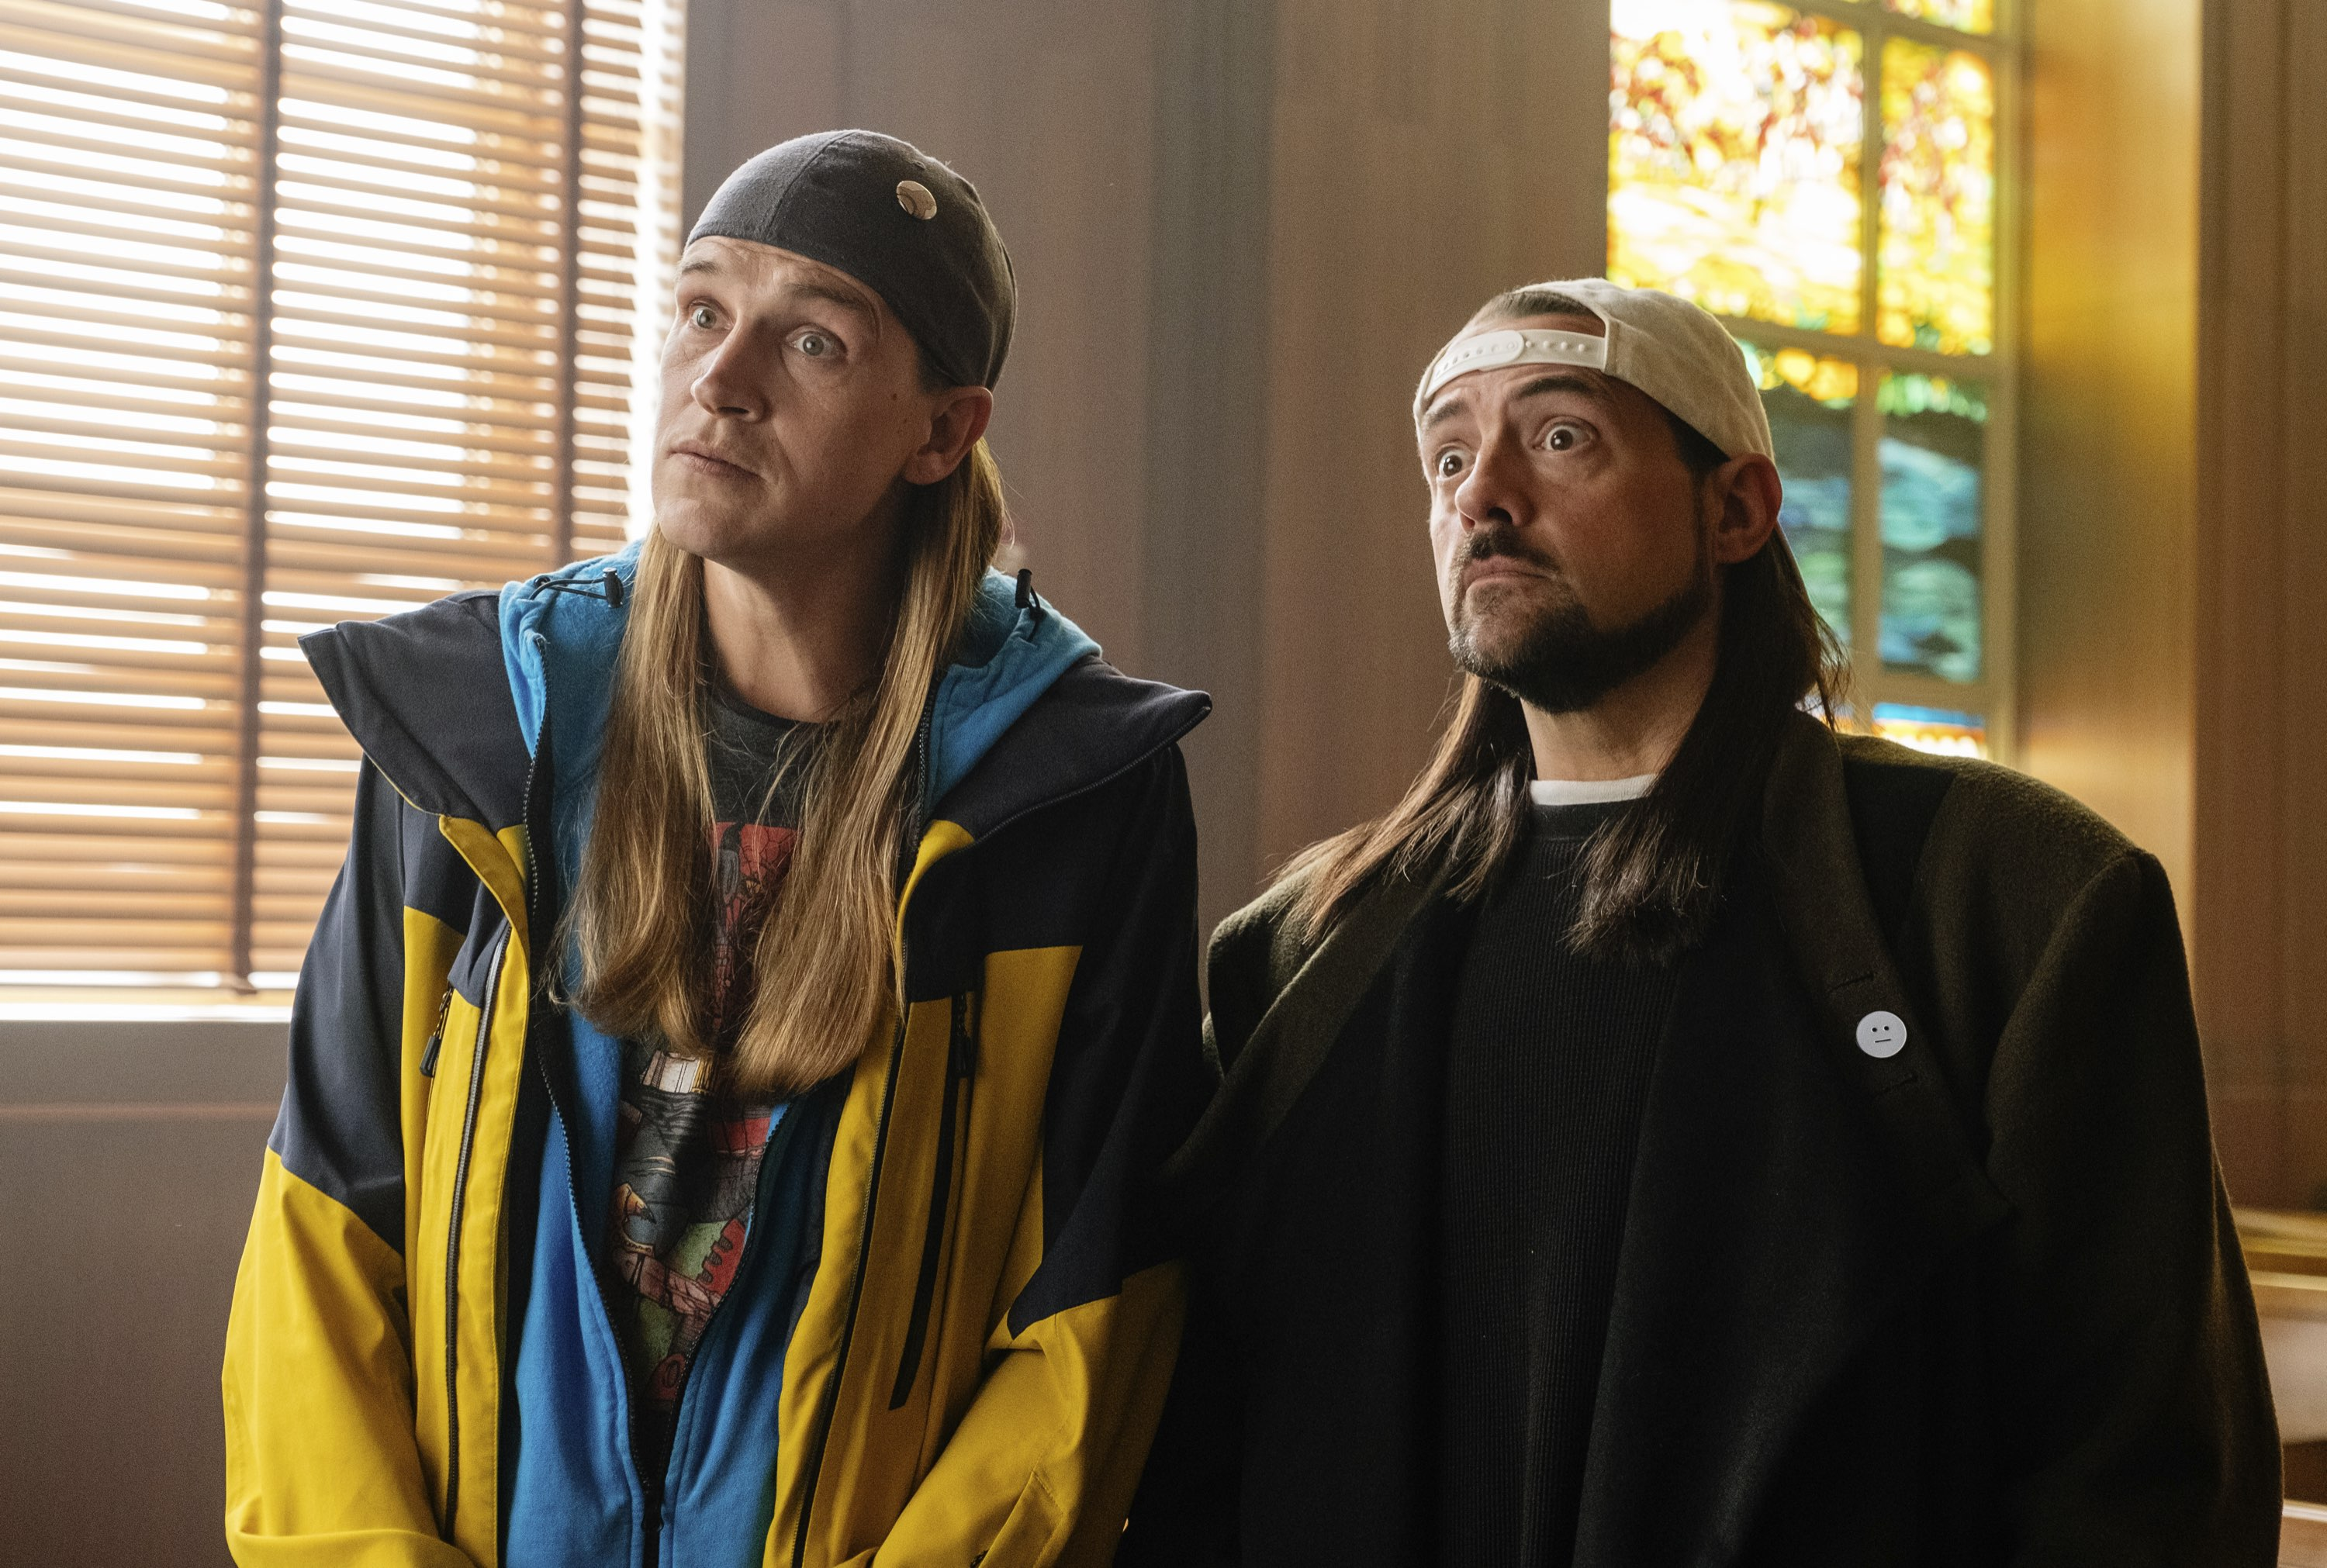 Stoked! Jay and Silent Bob Reboot to hit UK cinemas this November